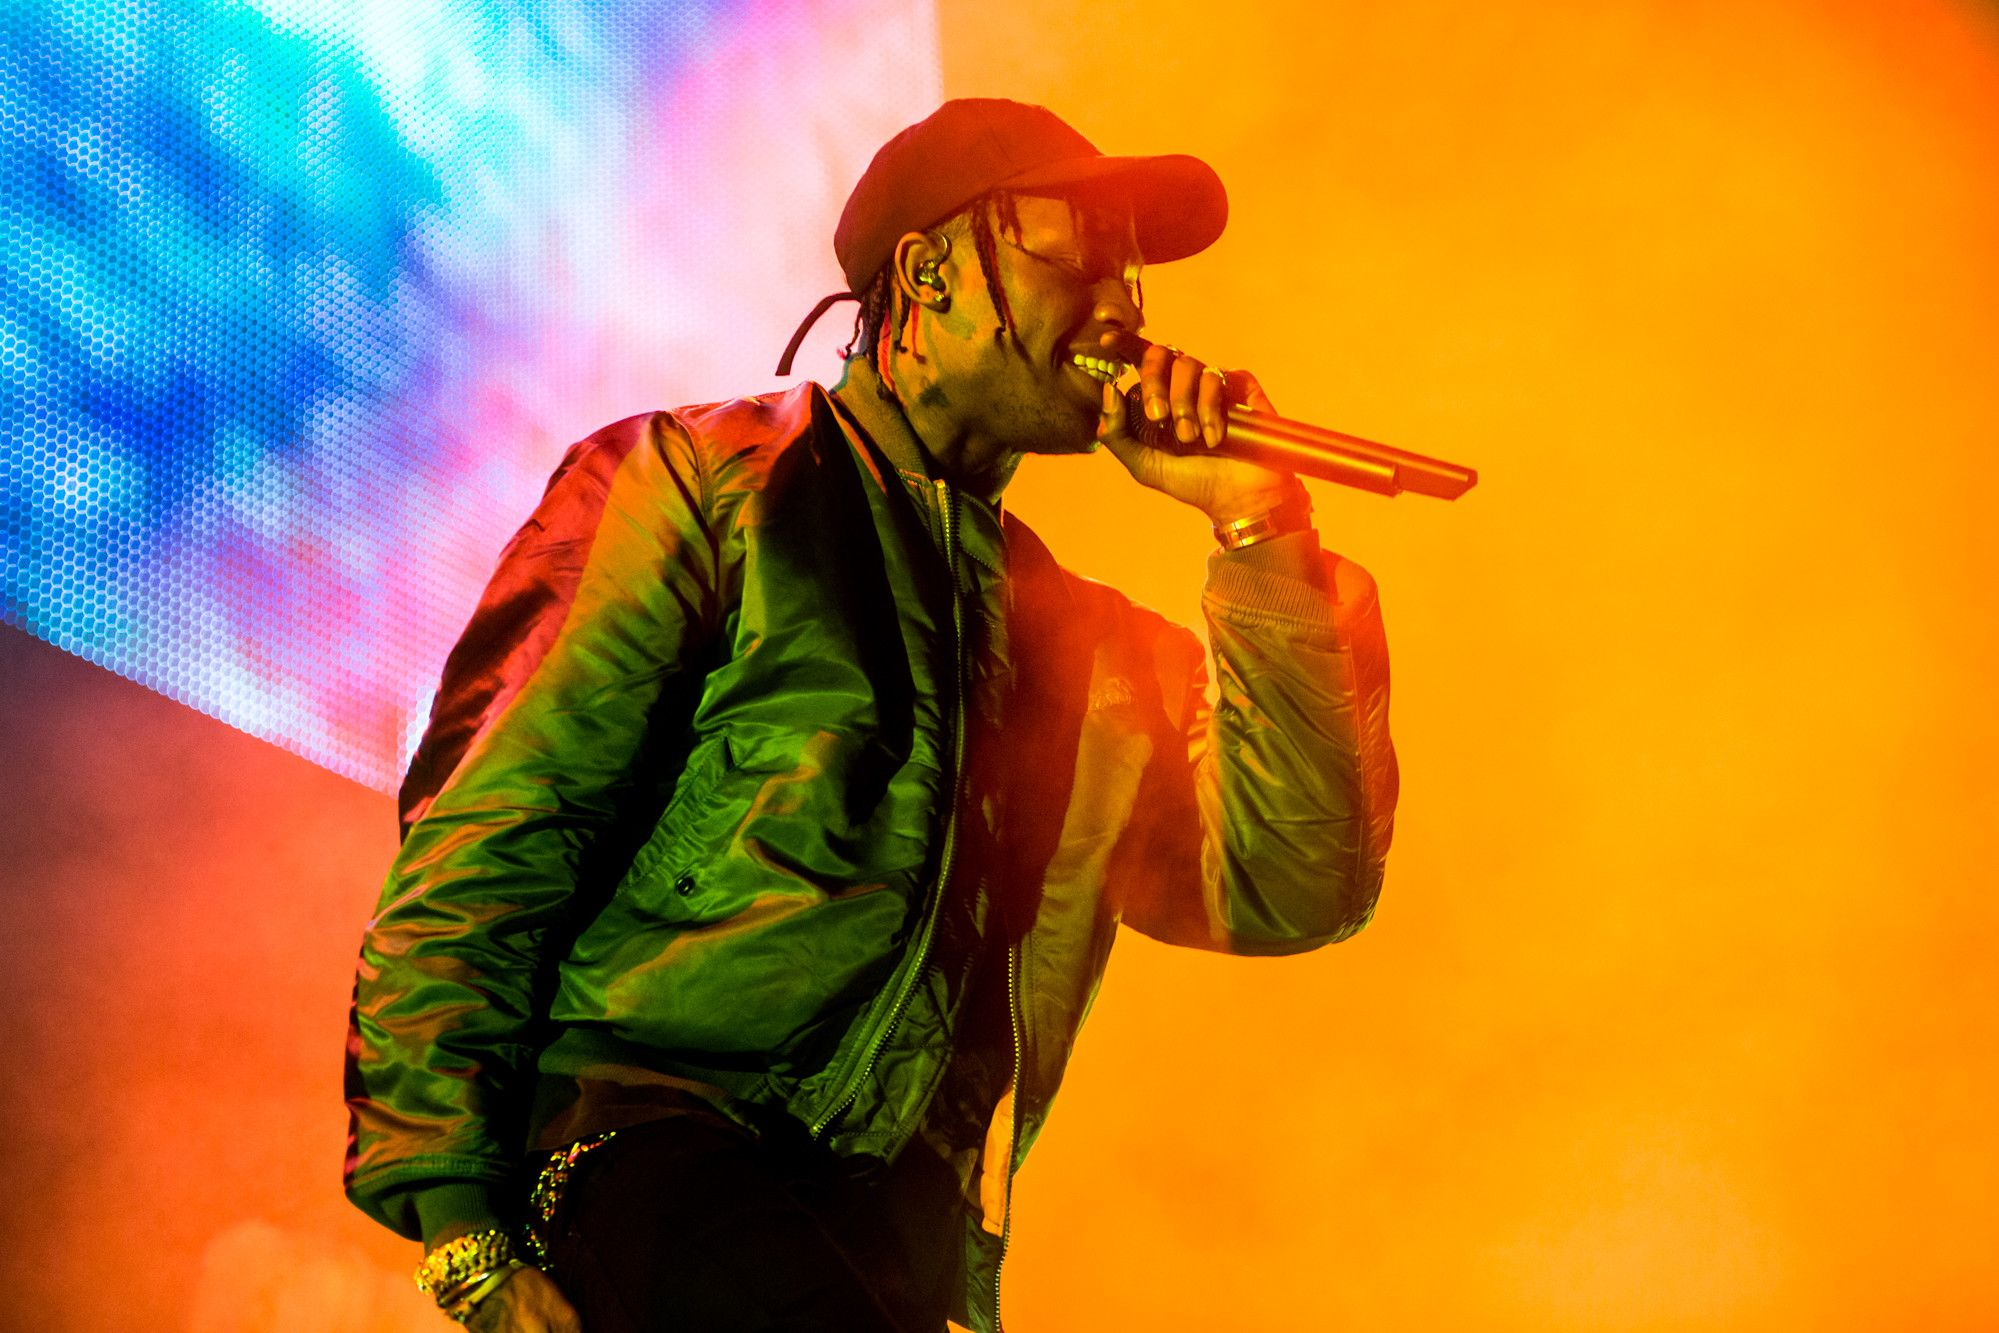 Travis Scott Rodeo Wallpaper (65+ images)